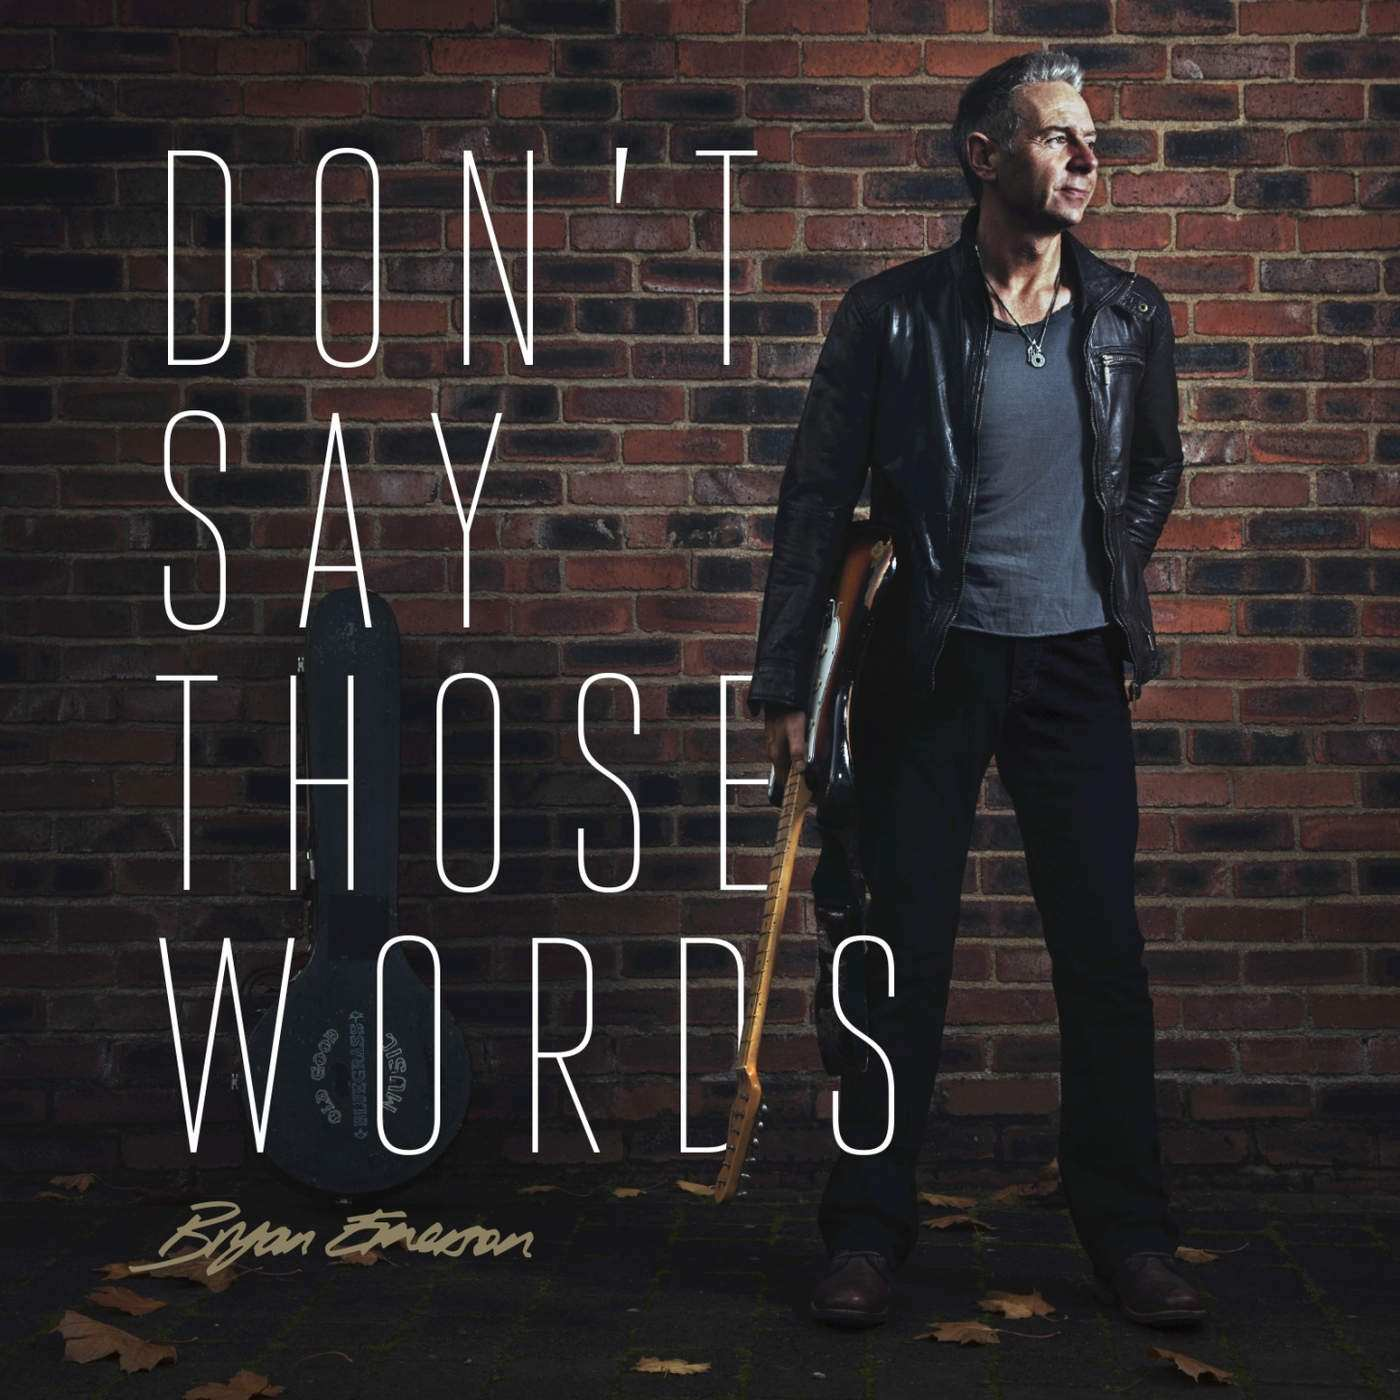 BRYAN EMERSON - DON'T SAY THOSE WORDS